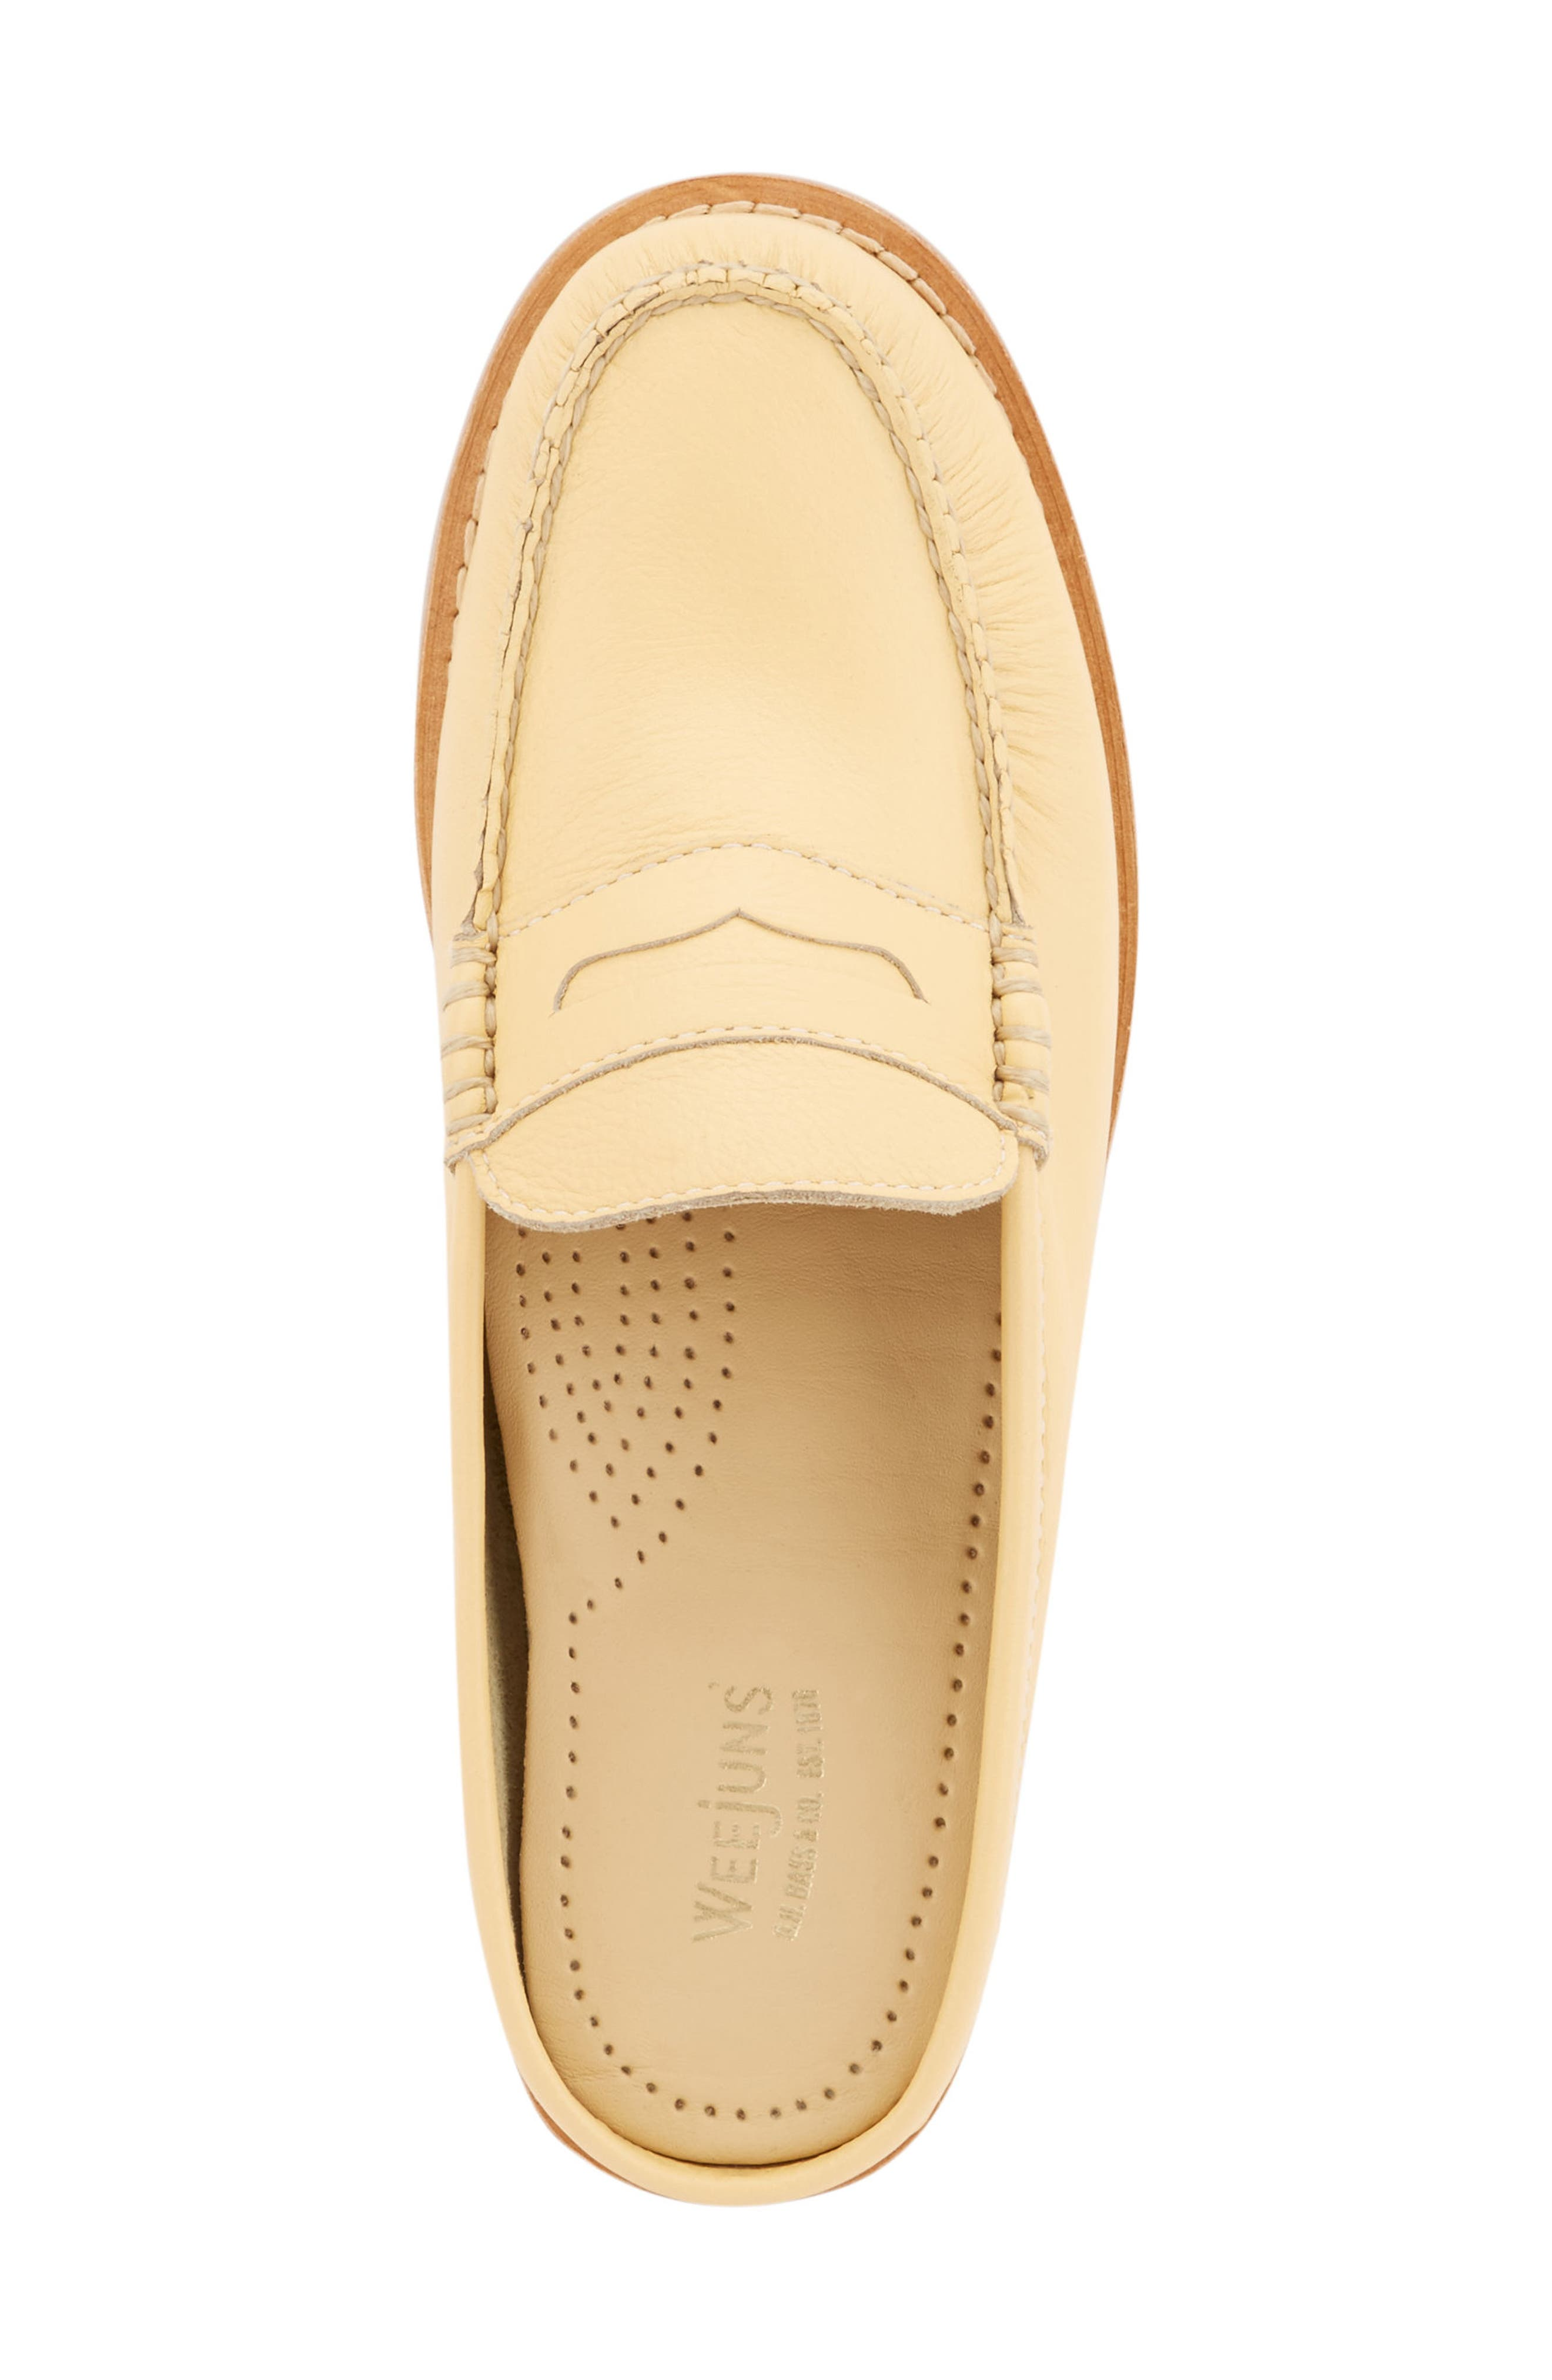 Wynn Loafer Mule,                             Alternate thumbnail 118, color,